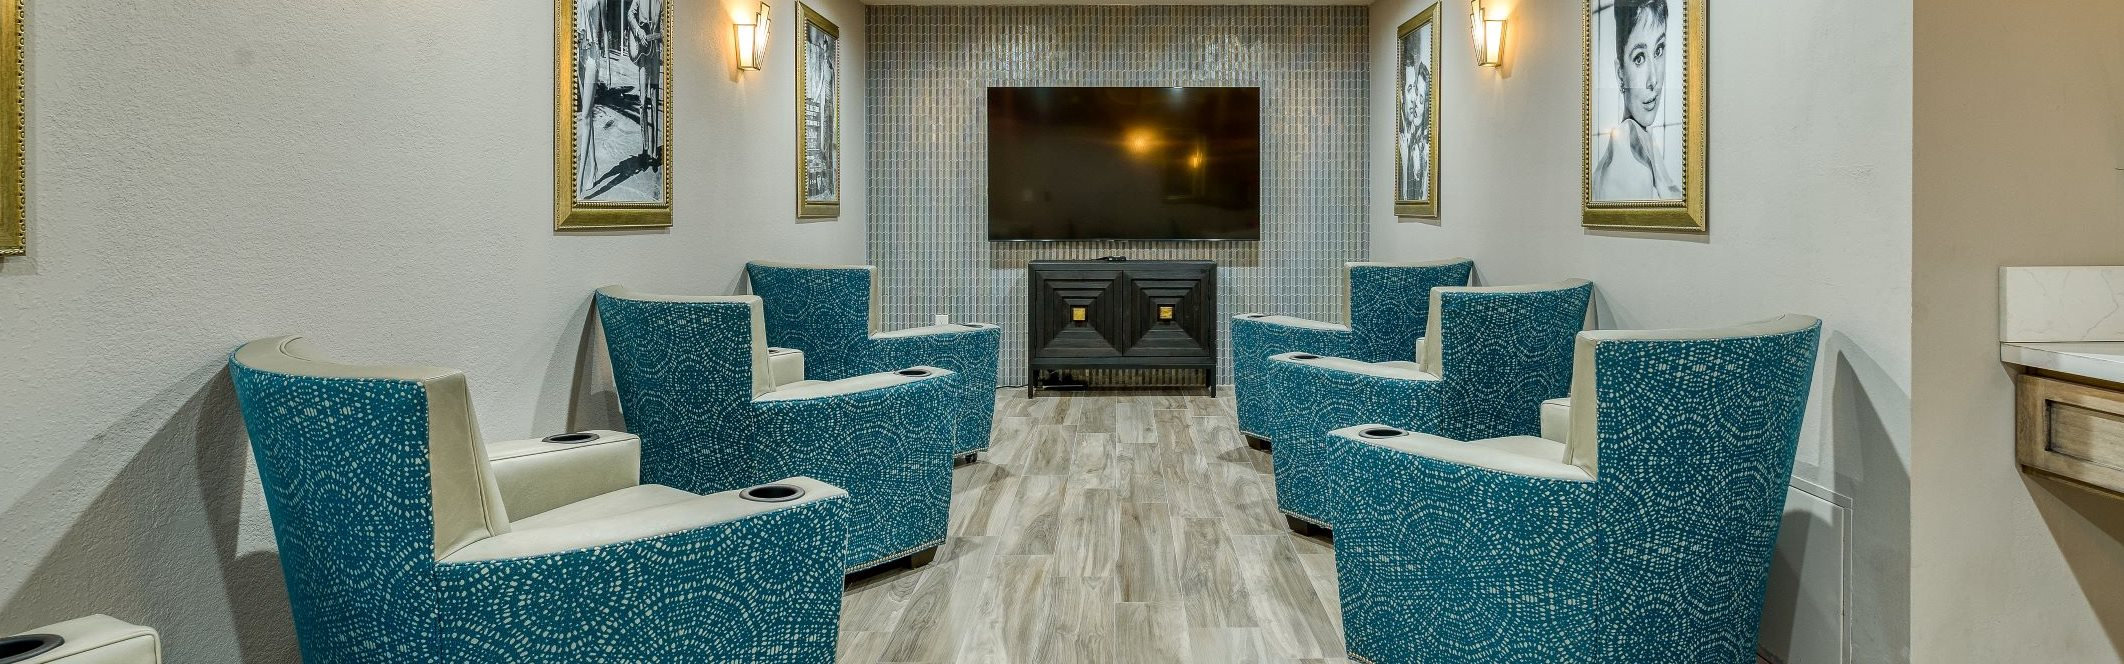 Relax and enjoy your retirement at Pacifica Senior Living Alta Vista